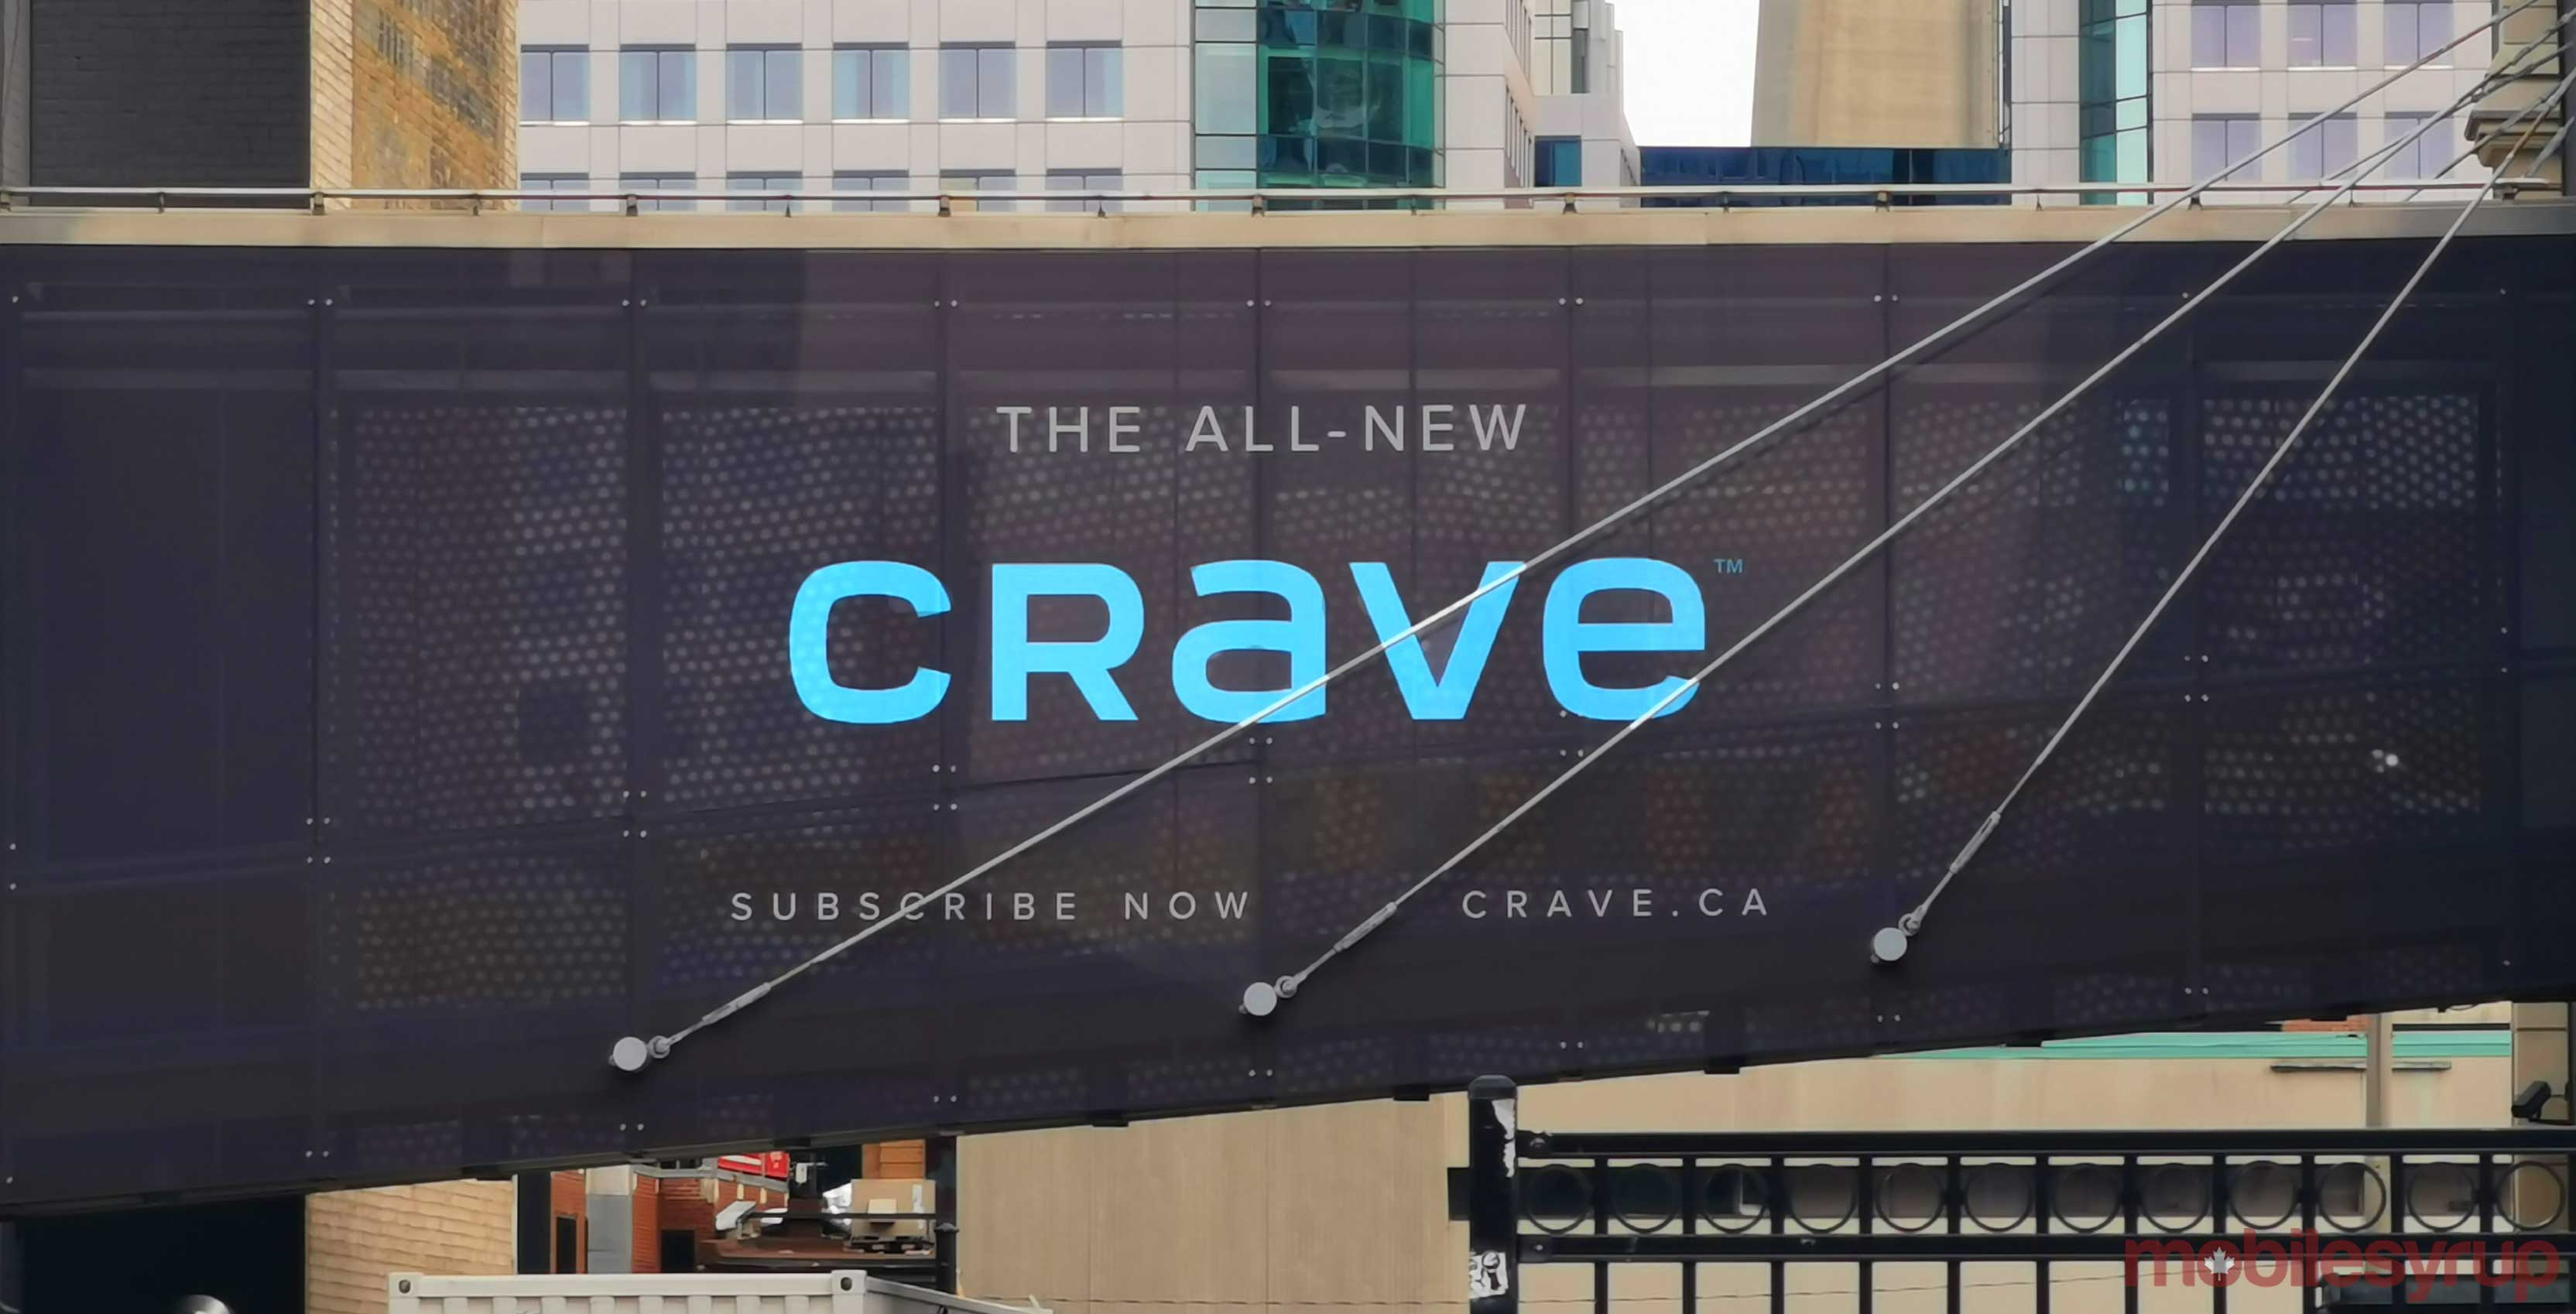 Bell's Crave streaming platform is now available on Android TV